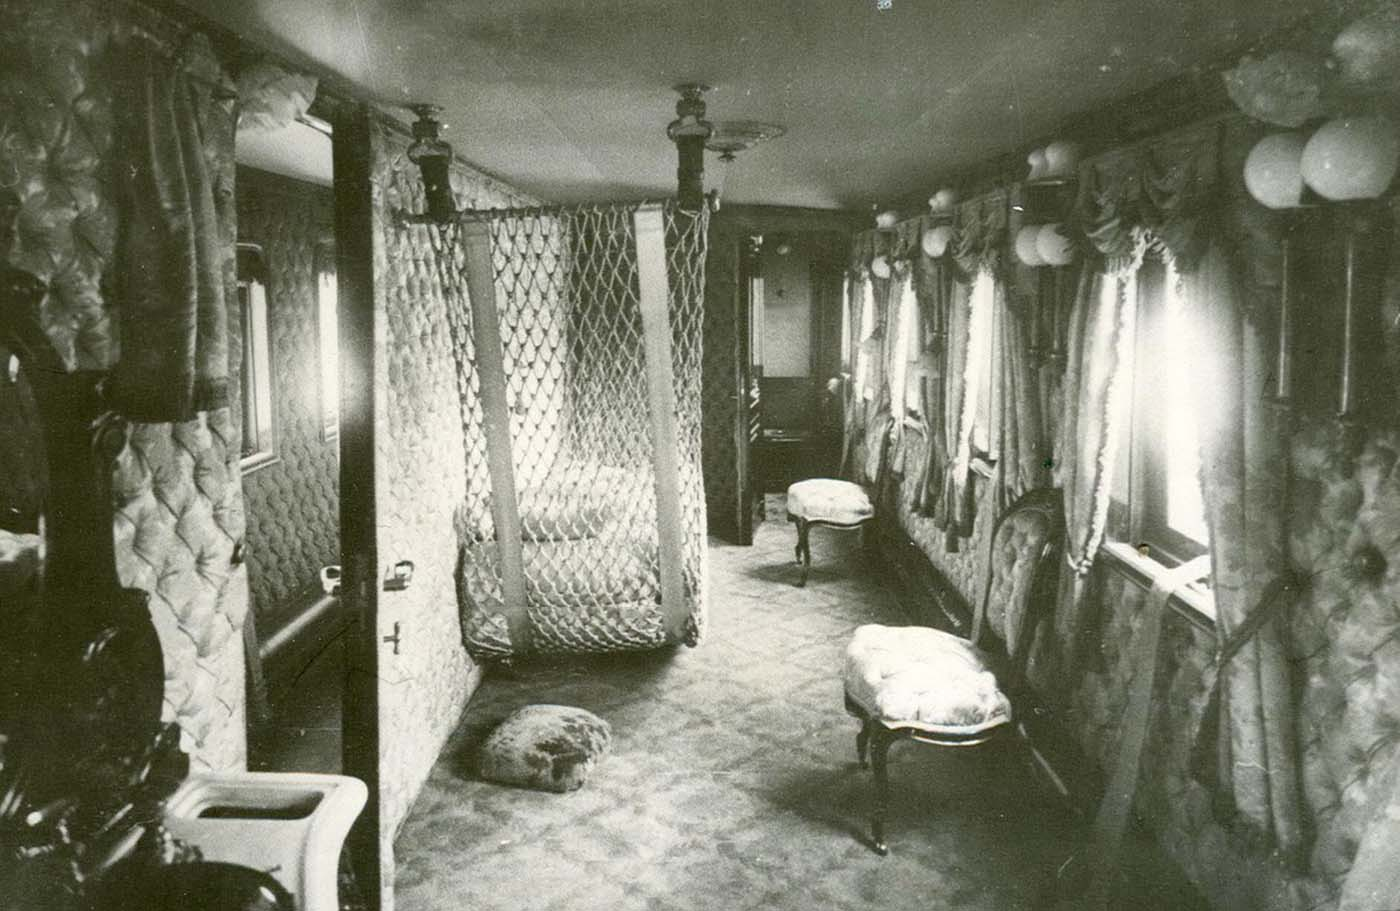 The walls and furnishings were upholstered, mainly in English cretonne with plant ornaments.